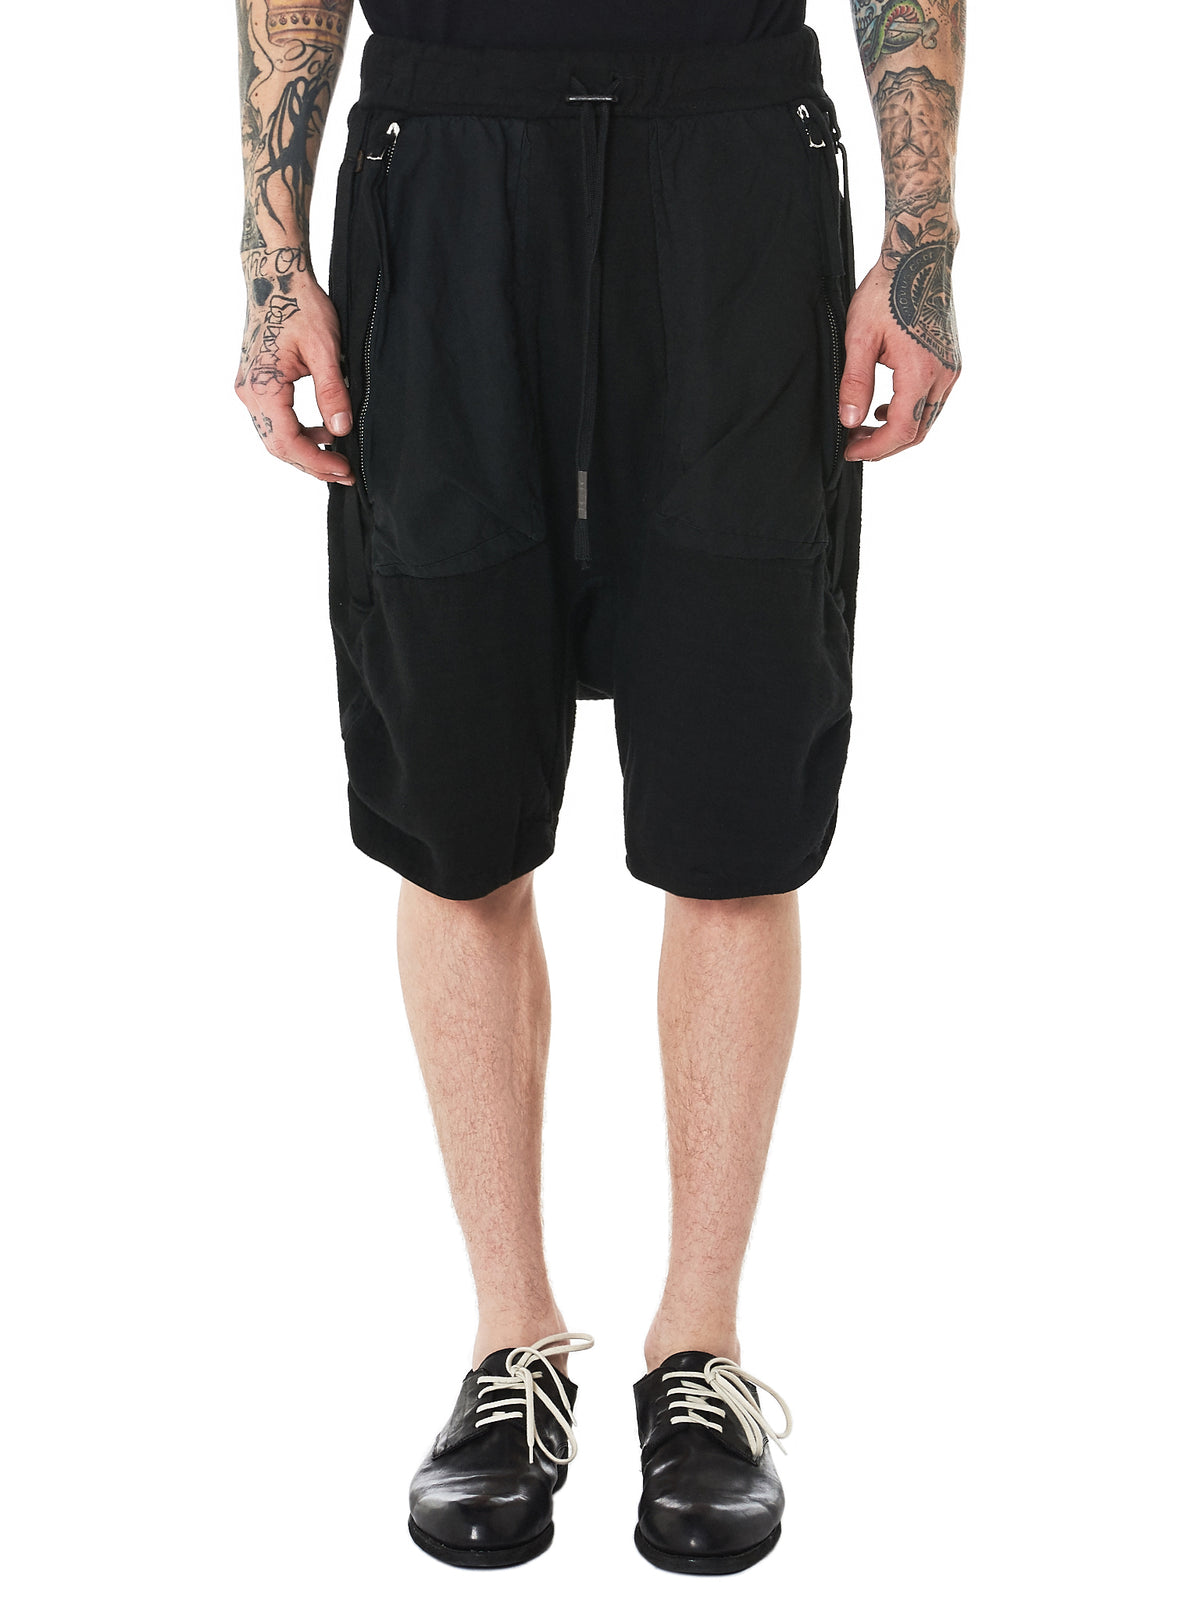 P8 Object Dyed Shorts (P8-F0603M-BLACK)